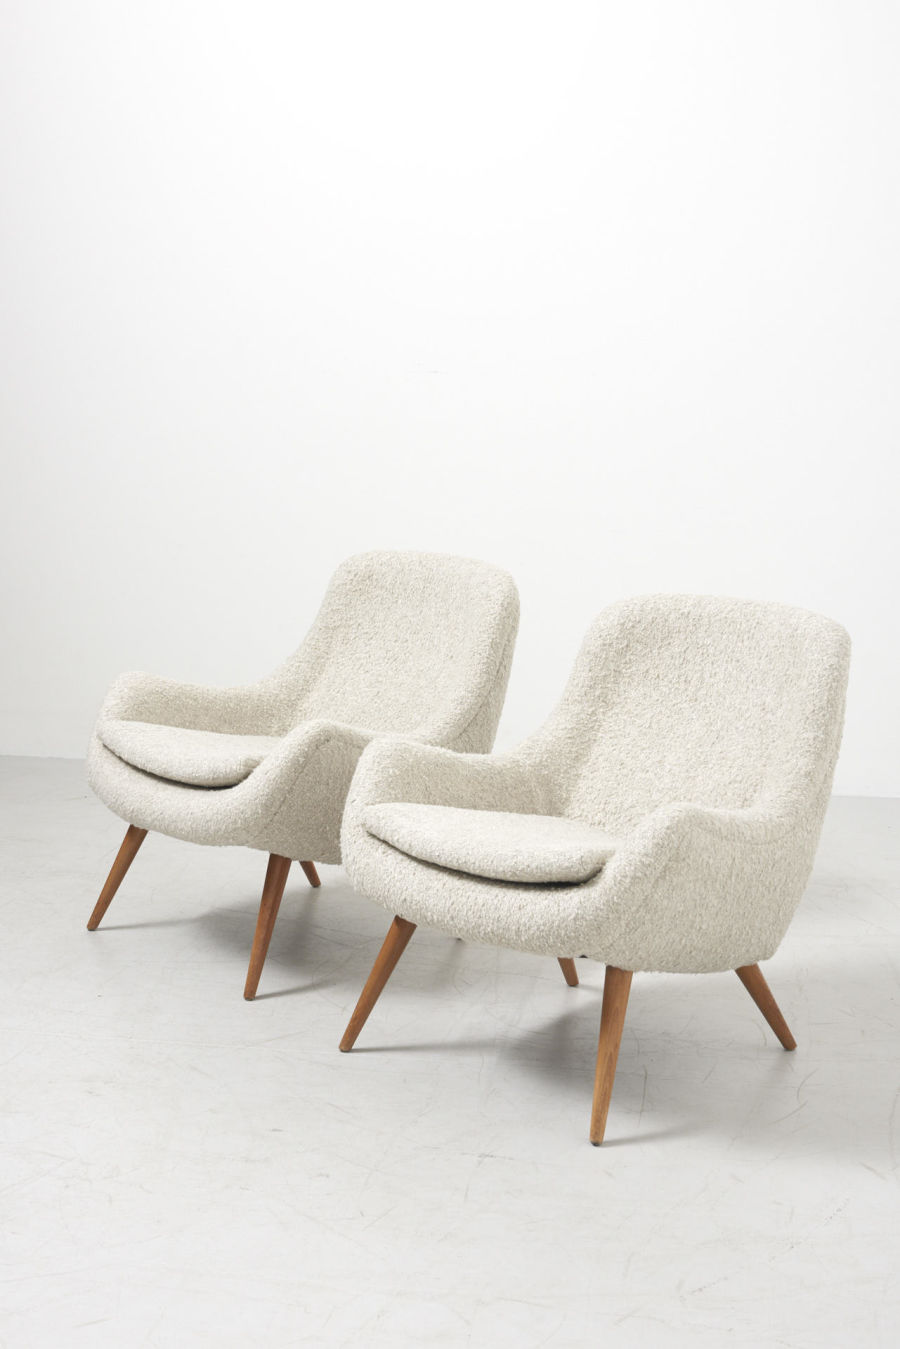 modestfurniture-vintage-1984-pair-easy-chairs-boucle04